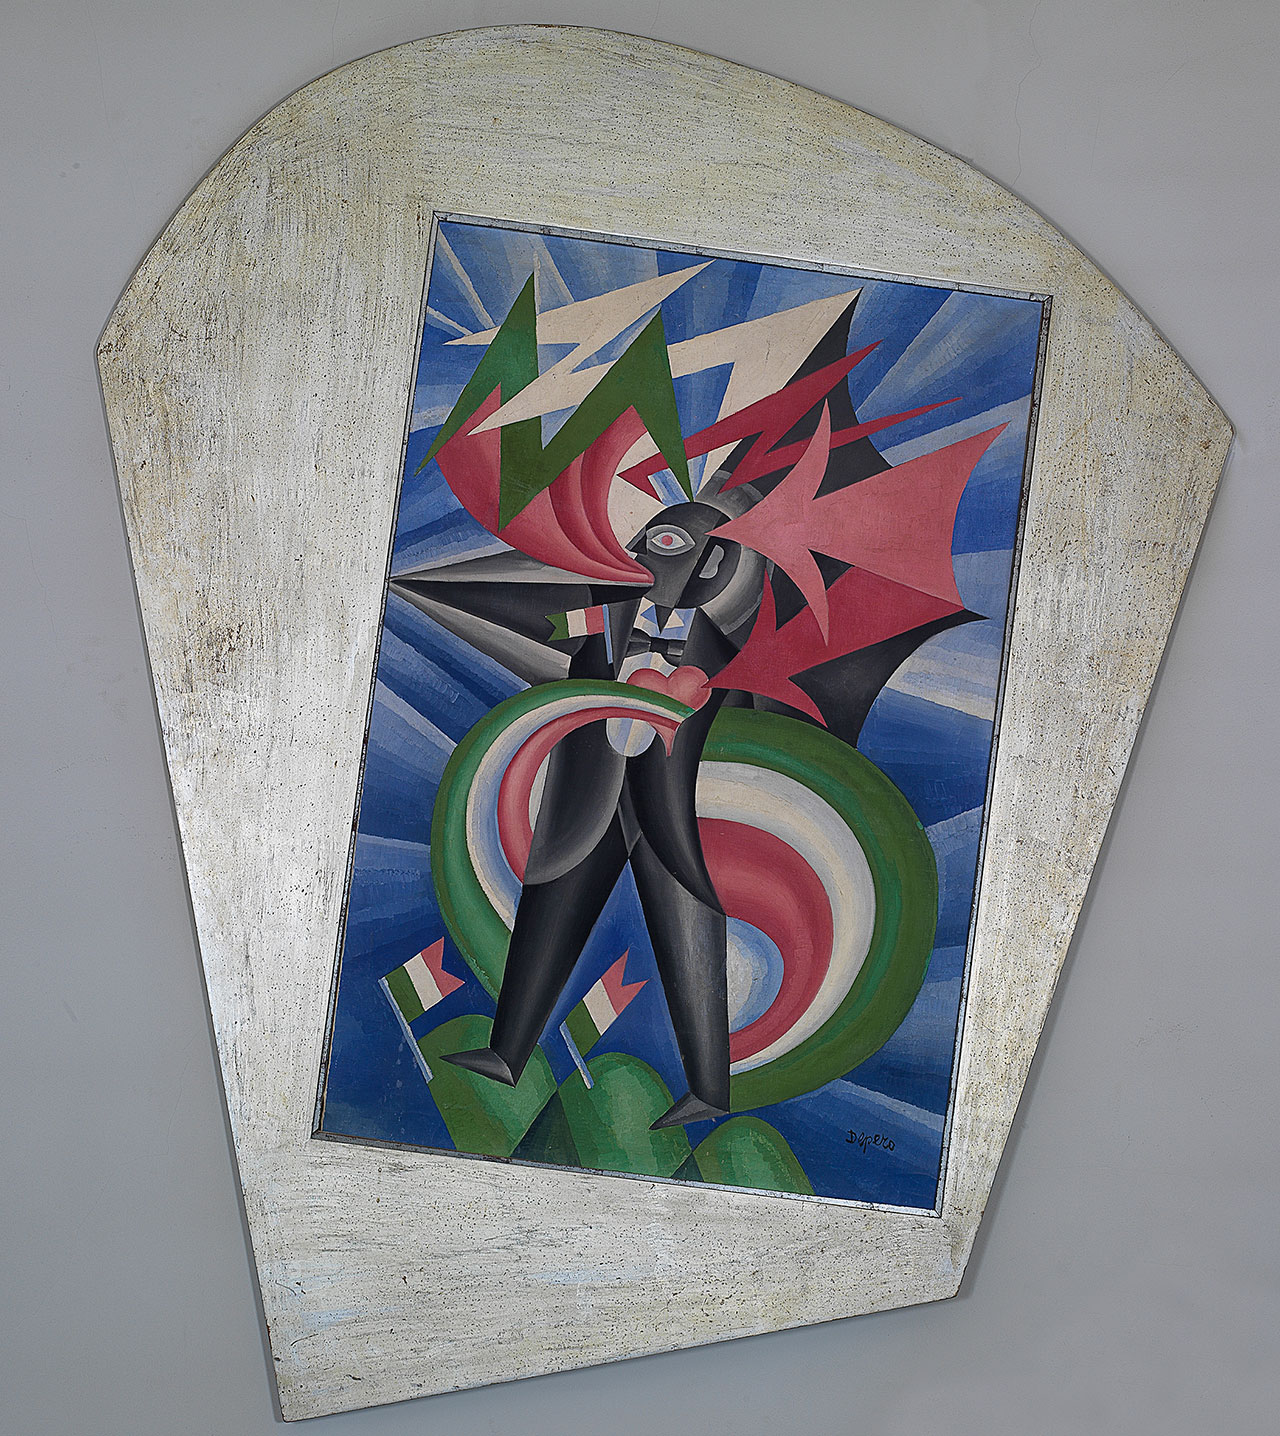 Fortunato Depero, Marinetti temporale patriottico, Ritratto psicologico, 1924, oil on canvas, 150x100 cm. Private collection. Photo: Photographic Studio Luca Carrà © Fortunato Depero by SIAE 2018.